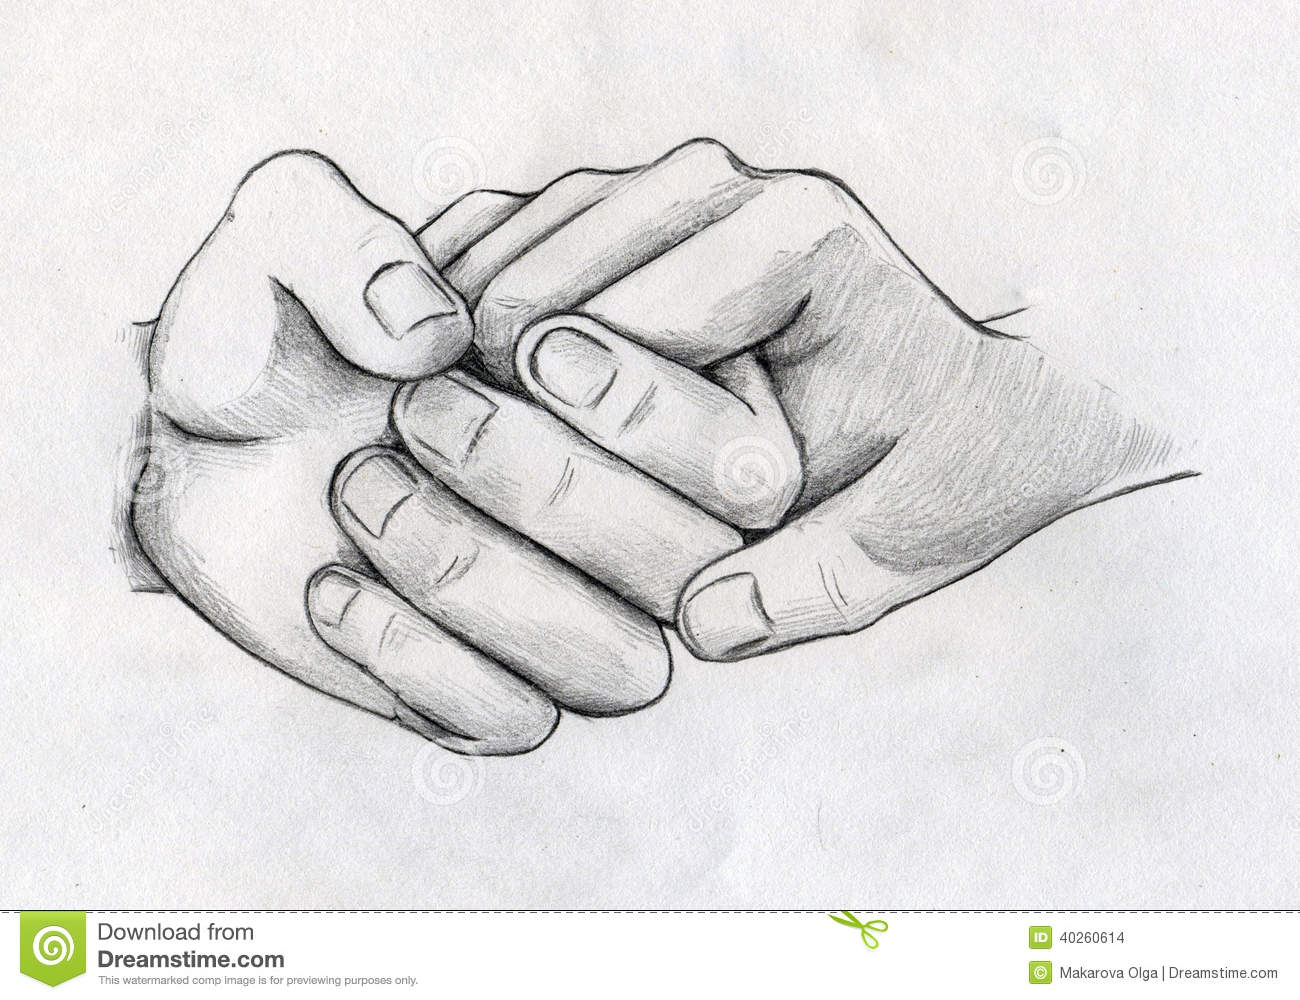 Tender hands of two people who love each other pencil drawing sketch